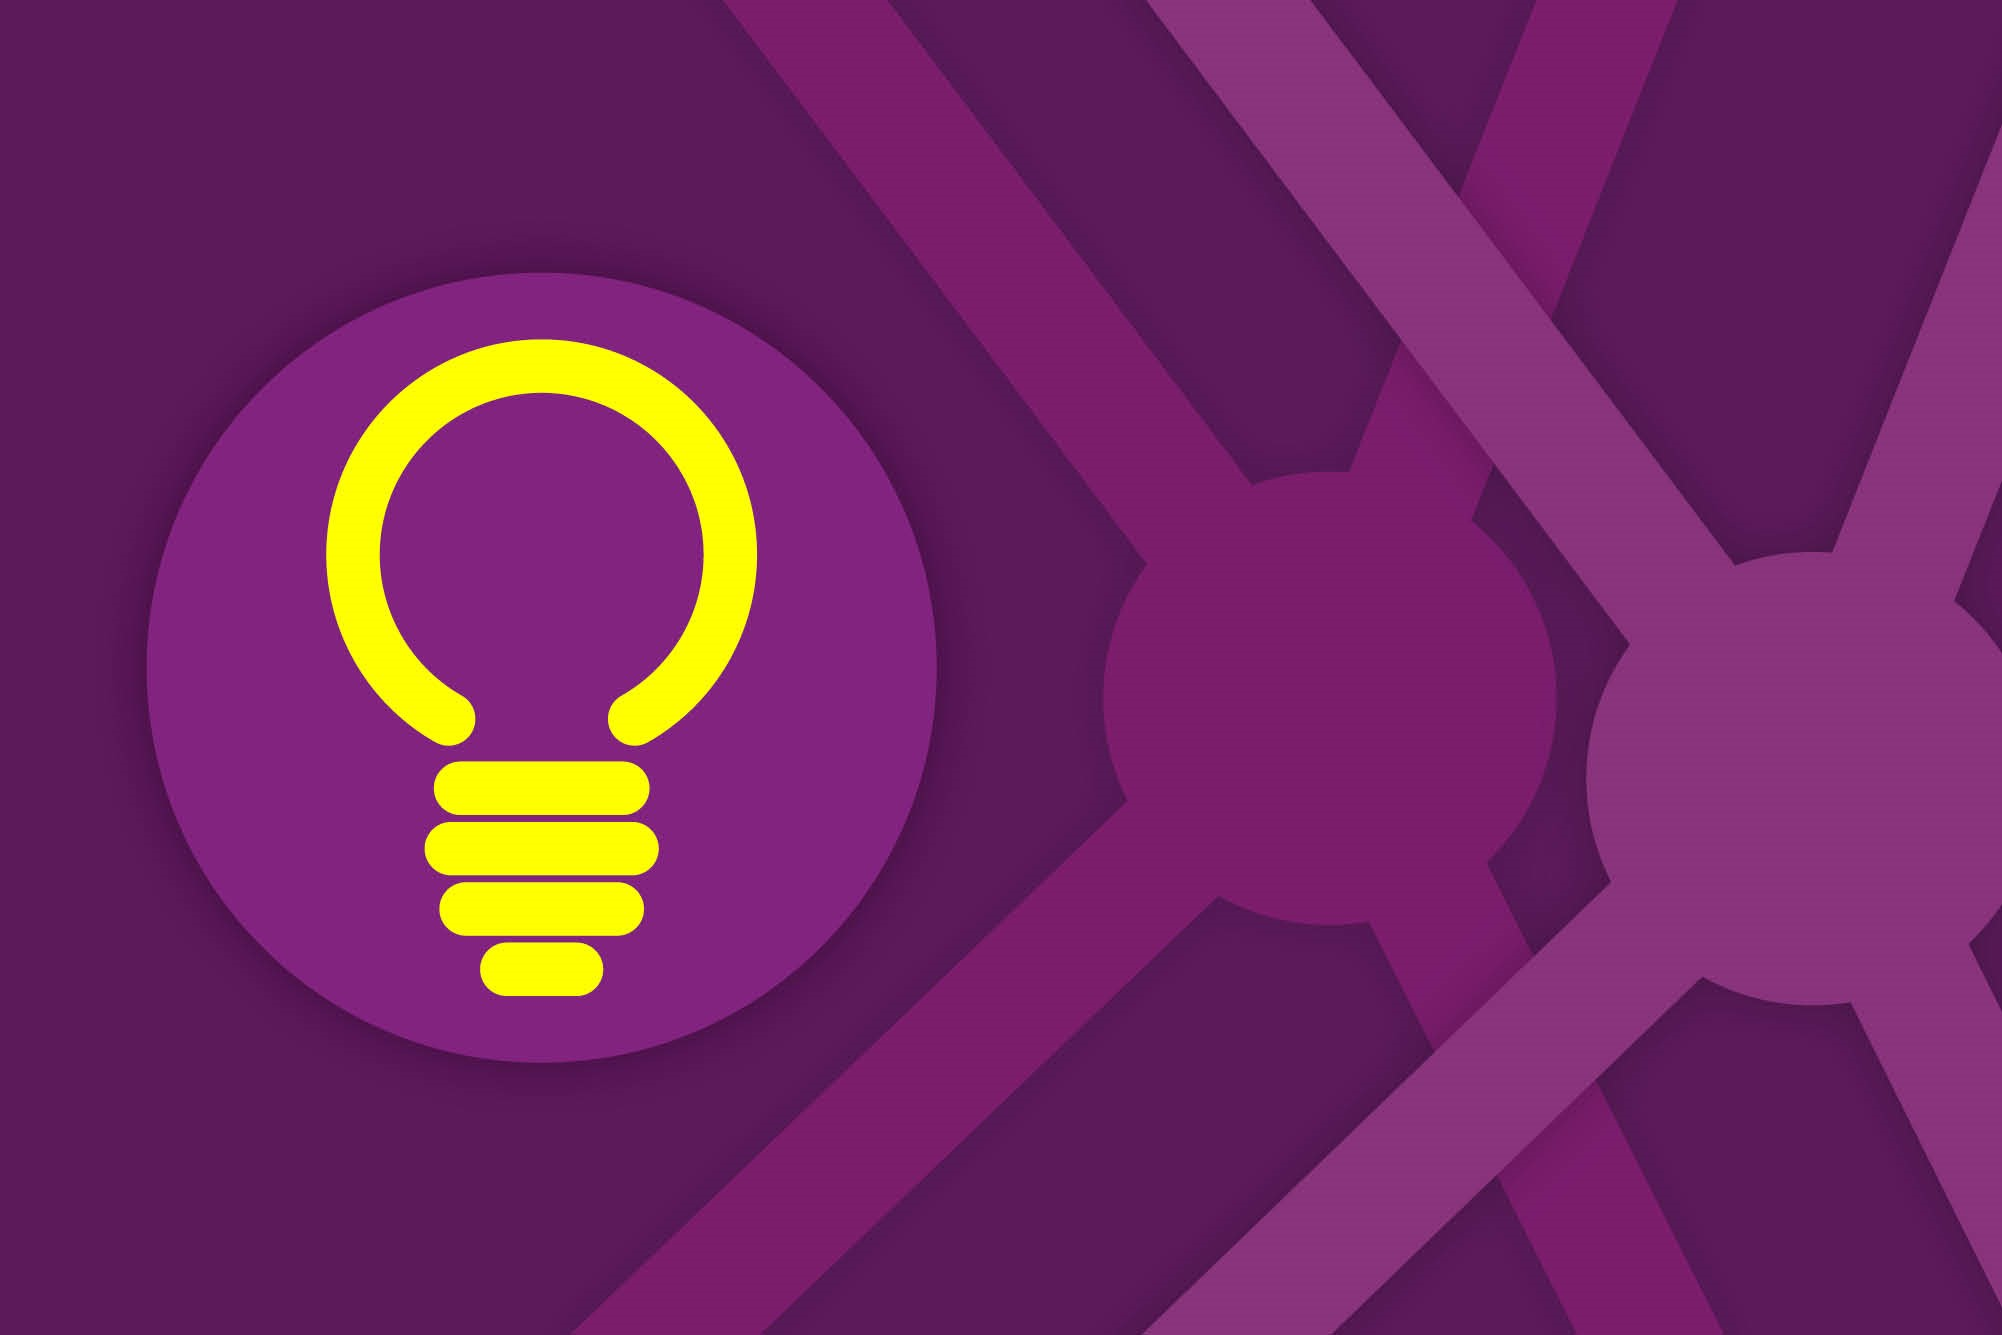 A purple image with stylised coronaviruses in the back ground and a yellow light bulb icon